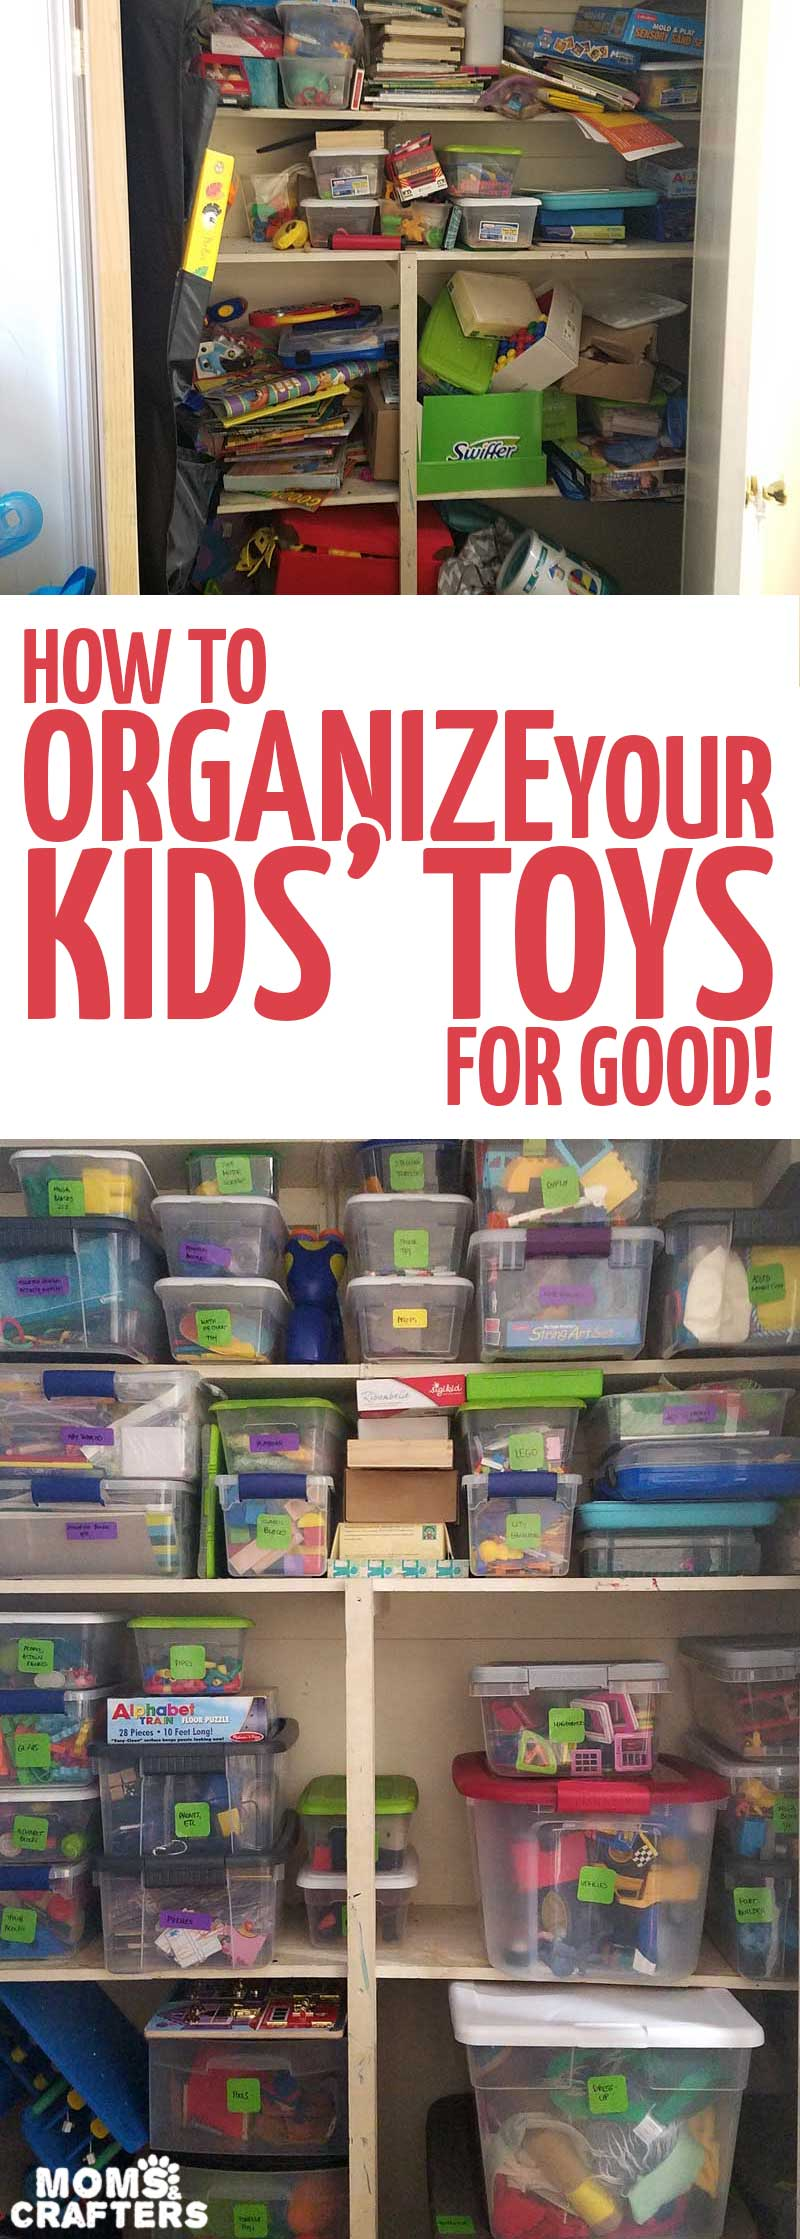 These playroom organization tips and tricks are brilliant - you'll get your kids' toys organized for good! These toy organization hacks and how-tos will stay clean and anyone can do it.